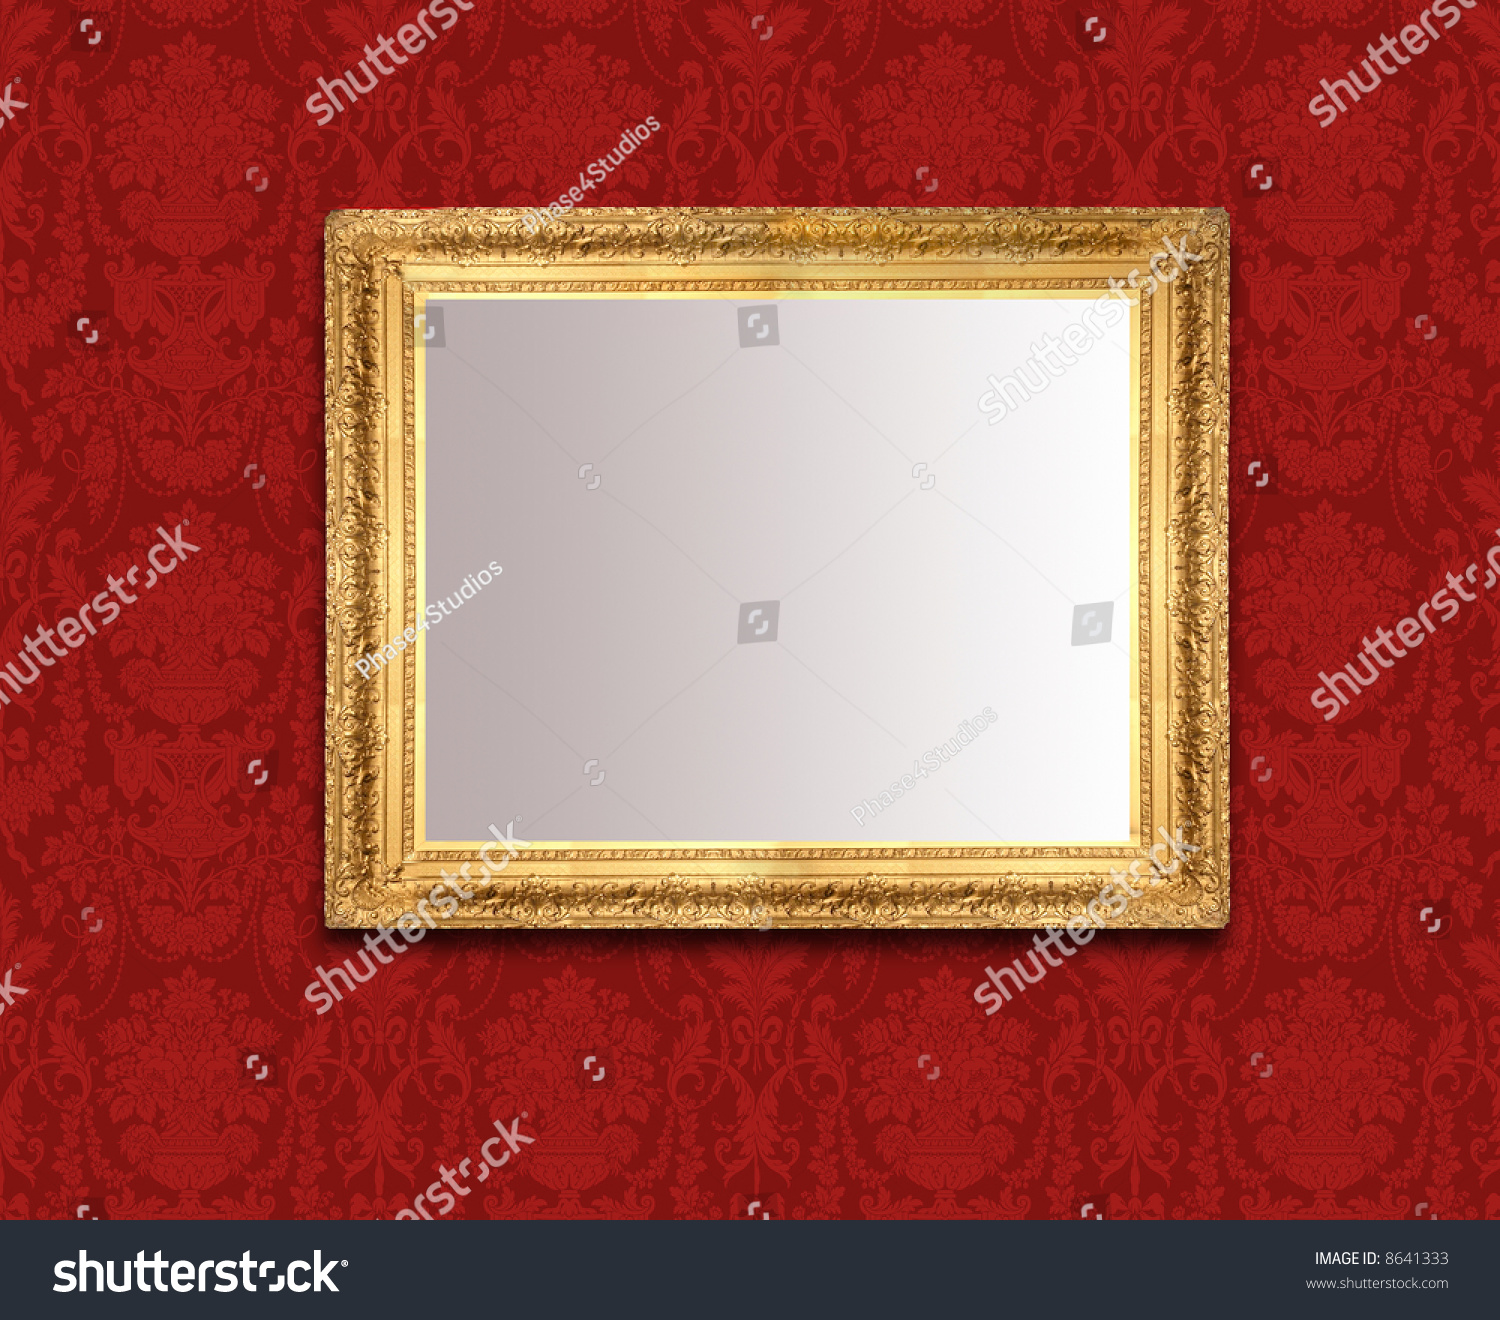 Mirror on a wall images home wall decoration ideas mirror on a wall choice image home wall decoration ideas ornamental gold mirror on wall red amipublicfo Gallery